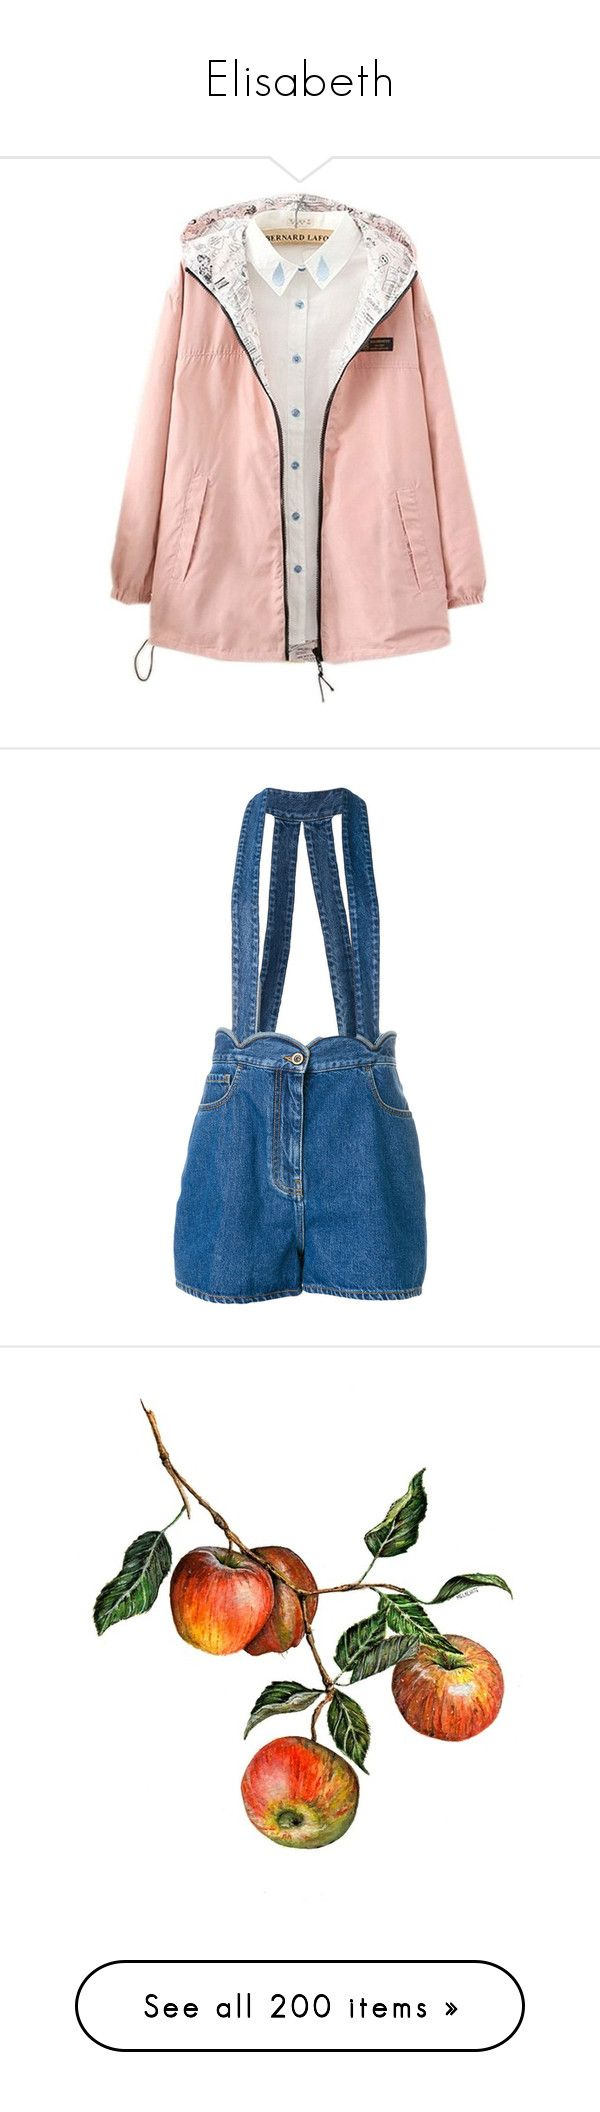 """Elisabeth"" by lbenigni ❤ liked on Polyvore featuring shorts, blue, blue jean short shorts, blue jean shorts, zipper shorts, scalloped denim shorts, scalloped edge shorts, skirts, mini skirts and bottoms"